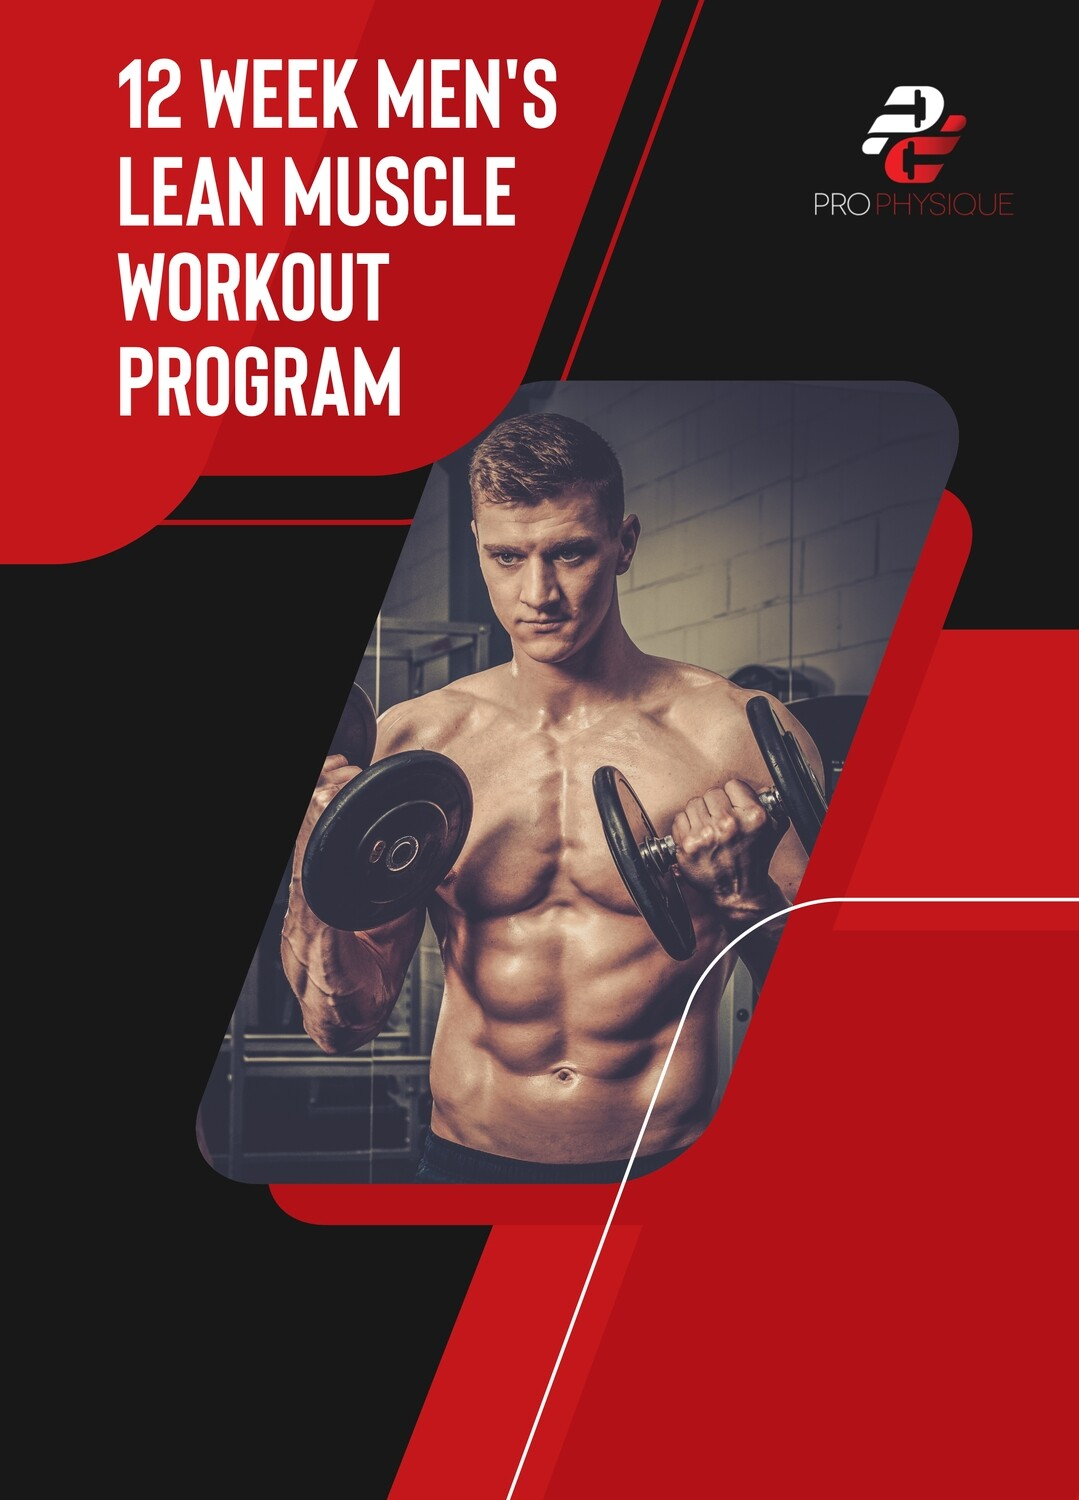 12 WEEK MEN'S LEAN MUSCLE WORKOUT PROGRAM